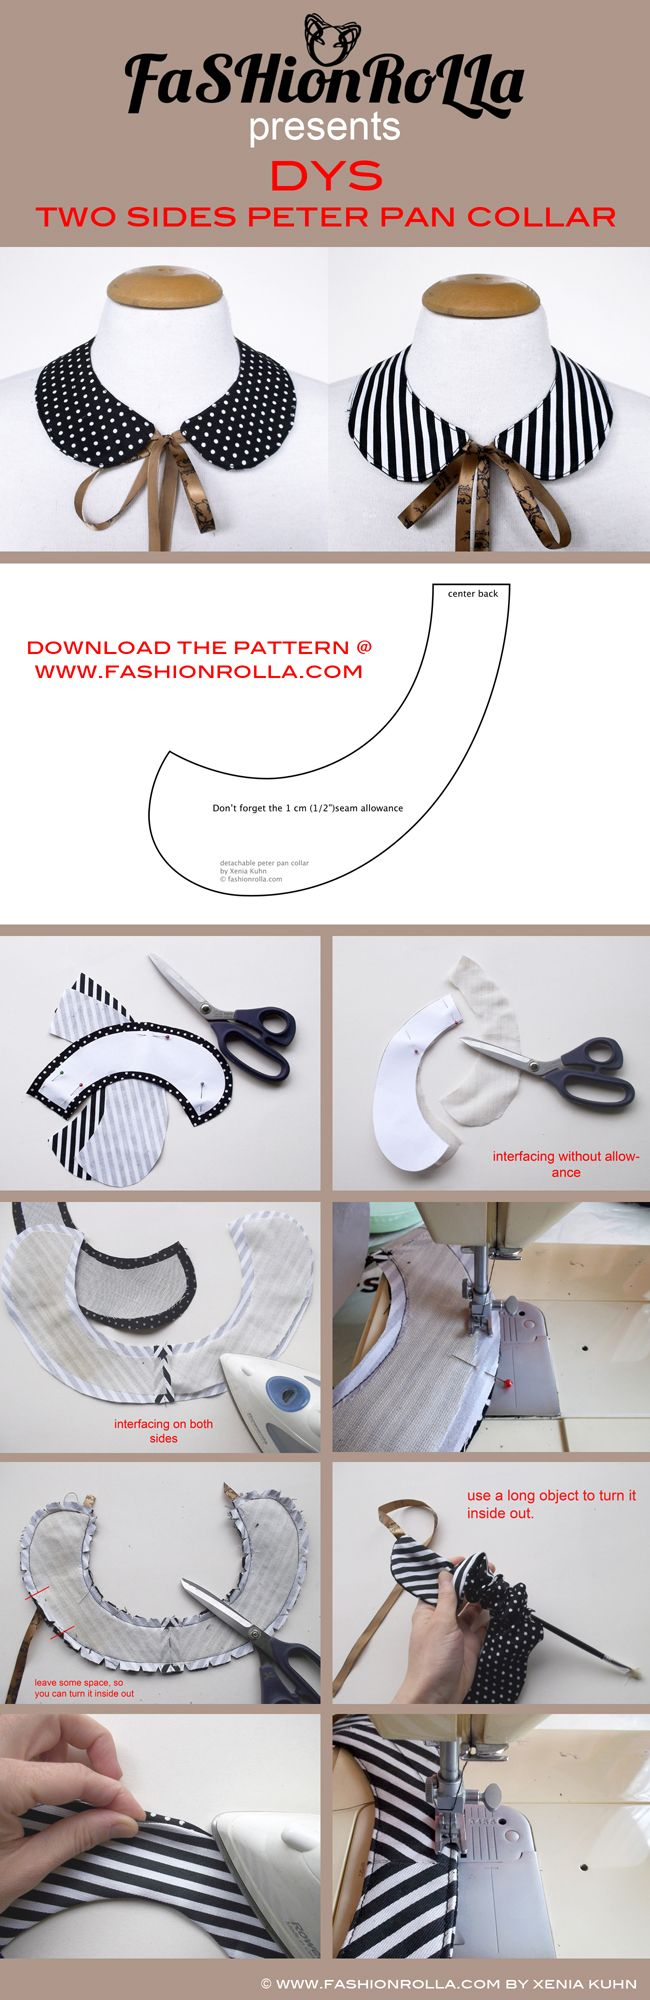 [DIY] Two sides peter pan collar | Fashionrolla by Xenia Kuhn: [DIY] Two sides peter pan collar